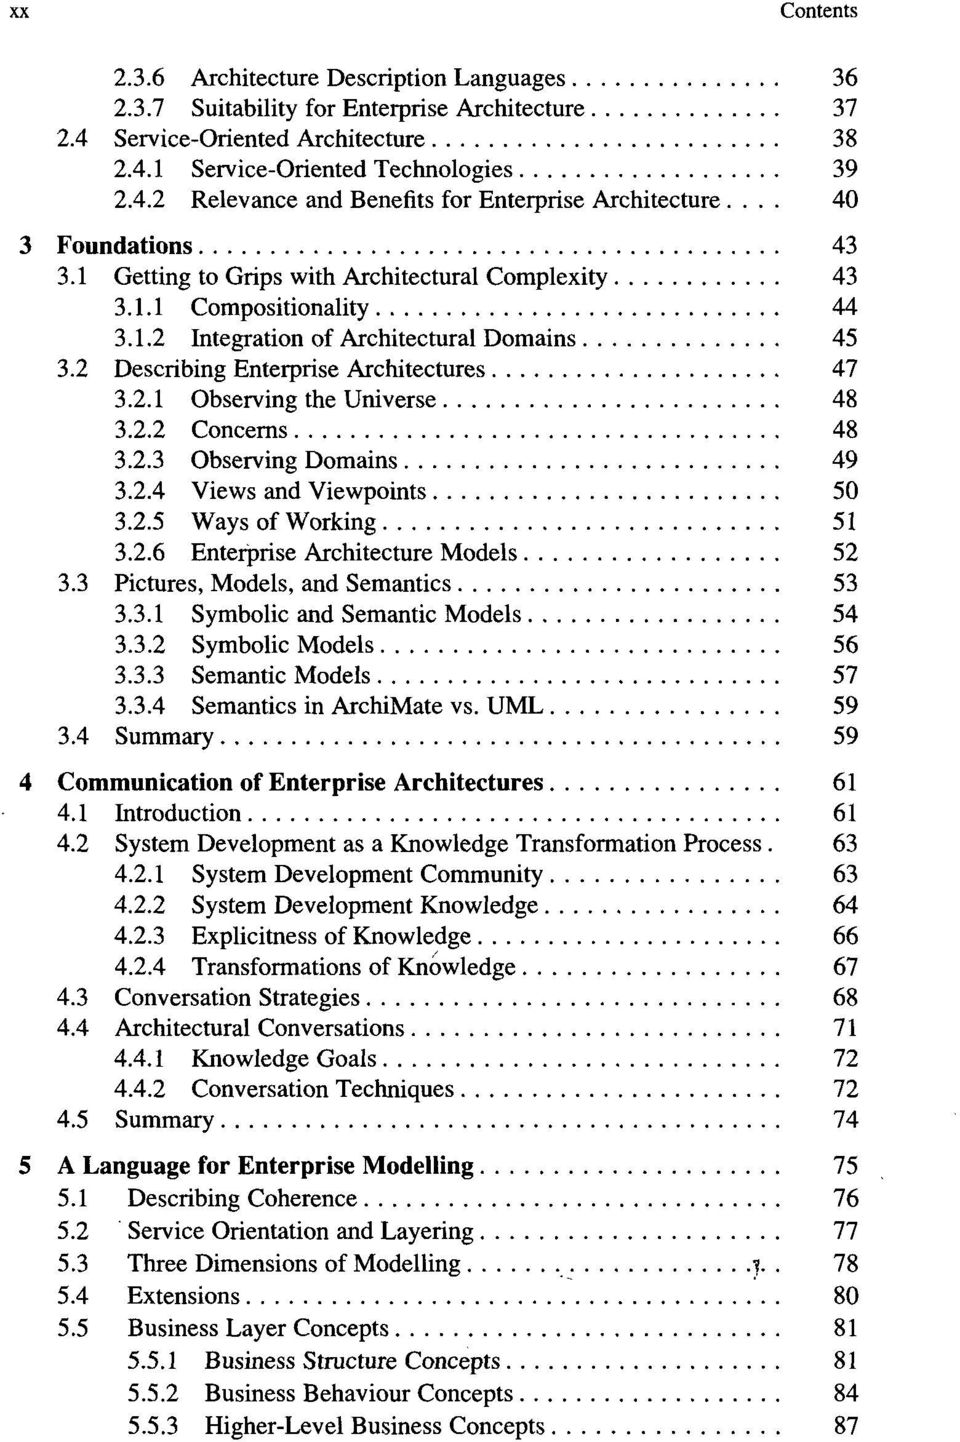 2.2 Concerns 48 3.2.3 Observing Domains 49 3.2.4 Views and Viewpoints 50 3.2.5 Ways of Working 51 3.2.6 Enterprise Architecture Models 52 3.3 Pictures, Models, and Semantics 53 3.3.1 Symbolic and Semantic Models 54 3.